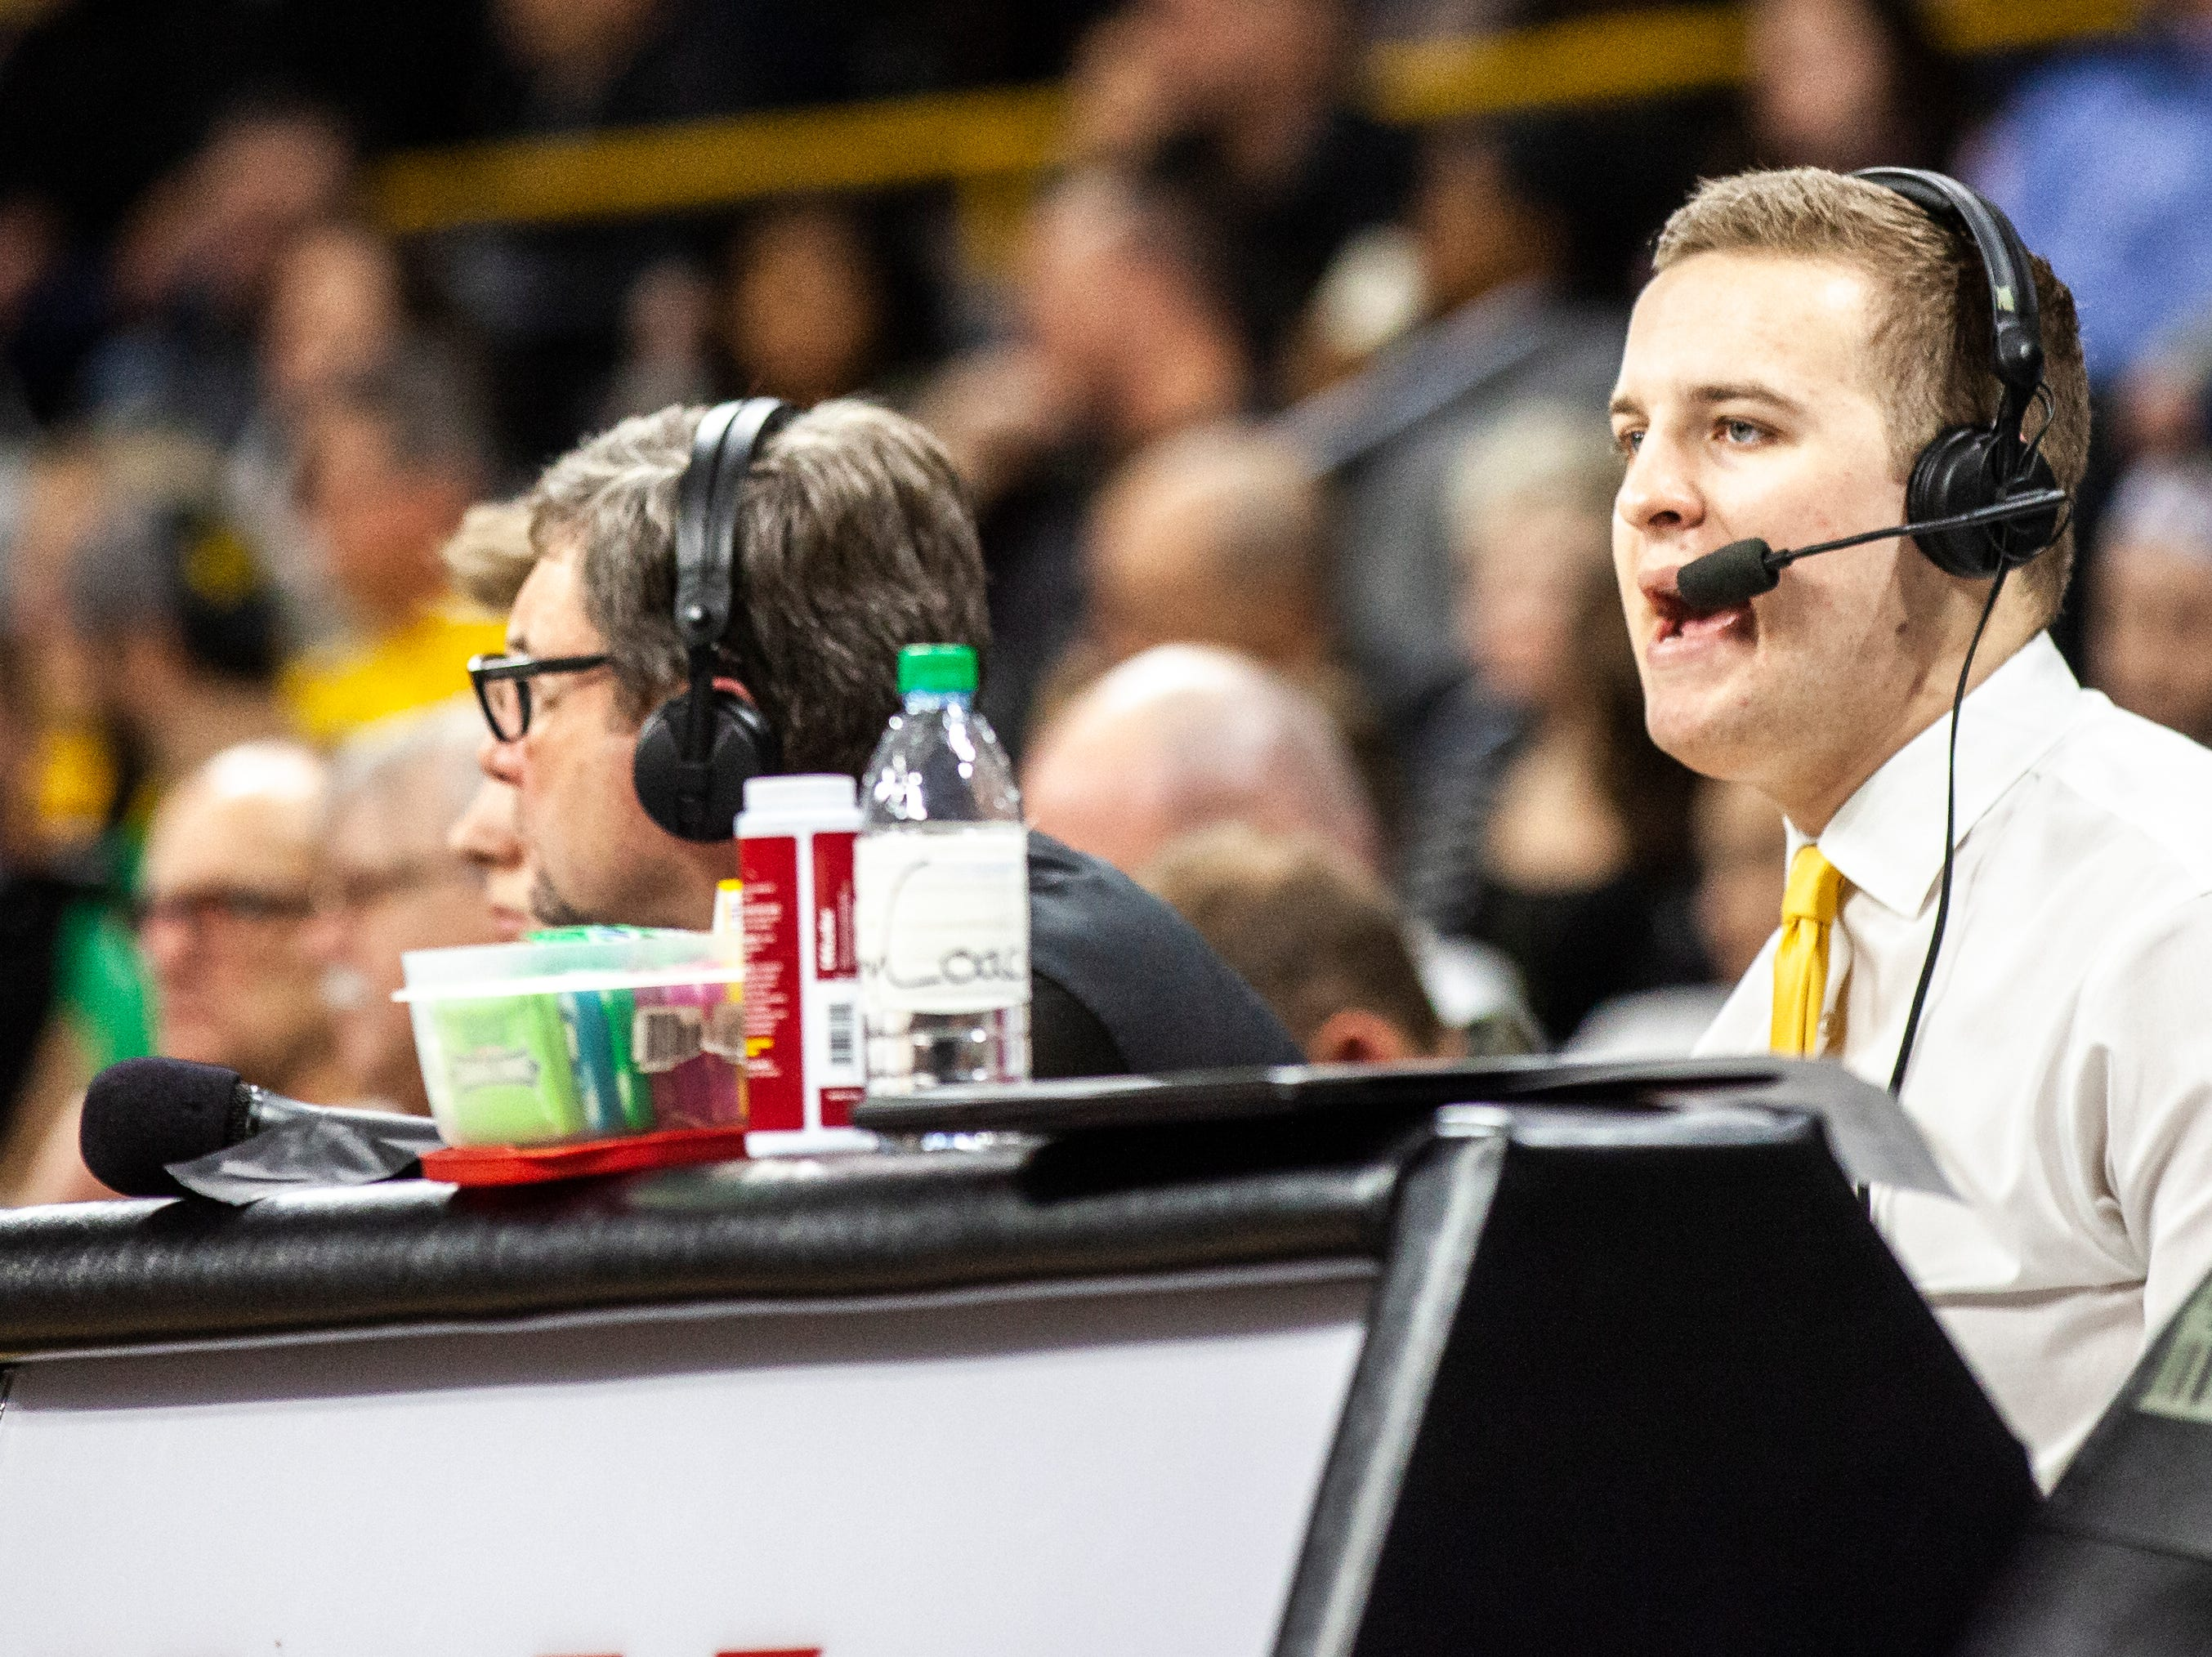 Iowa radio commentator Zach Mackey is seen during a NCAA men's basketball game on Saturday, Dec. 29, 2018, at Carver-Hawkeye Arena in Iowa City.